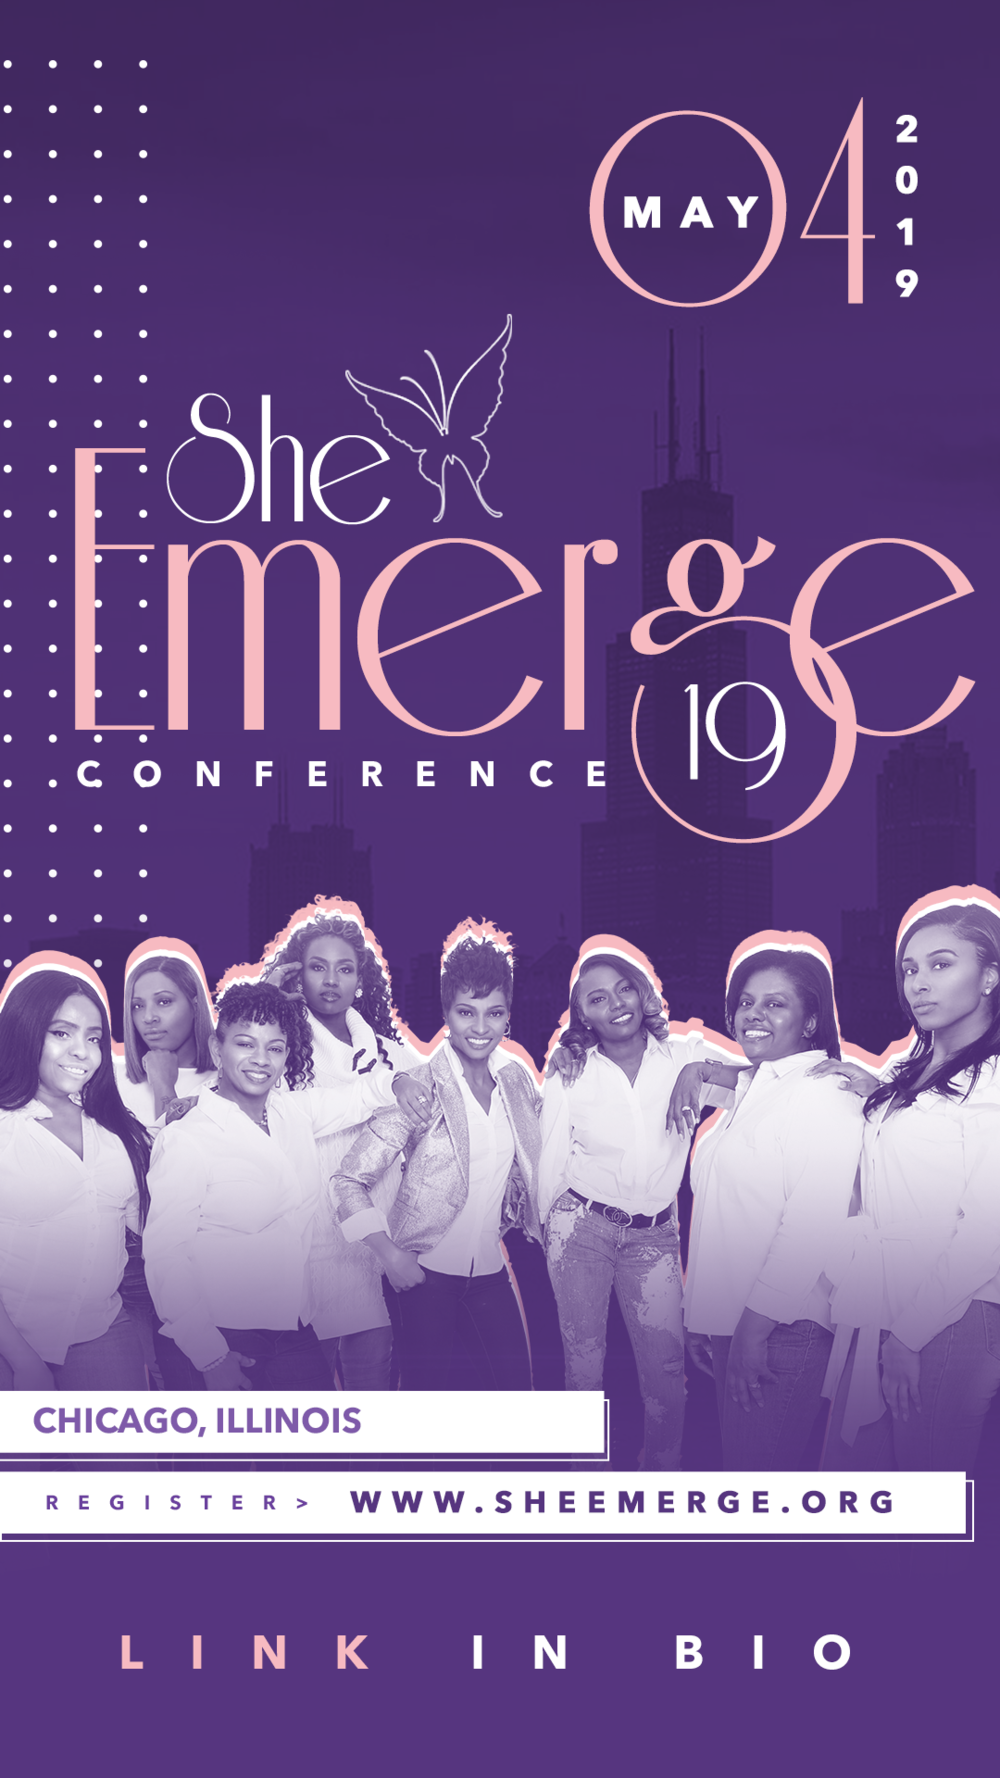 It's Time To Emerge! - The 2019 Emerge Conference is coming up very soon. Register today to secure your spot at our annual conference!